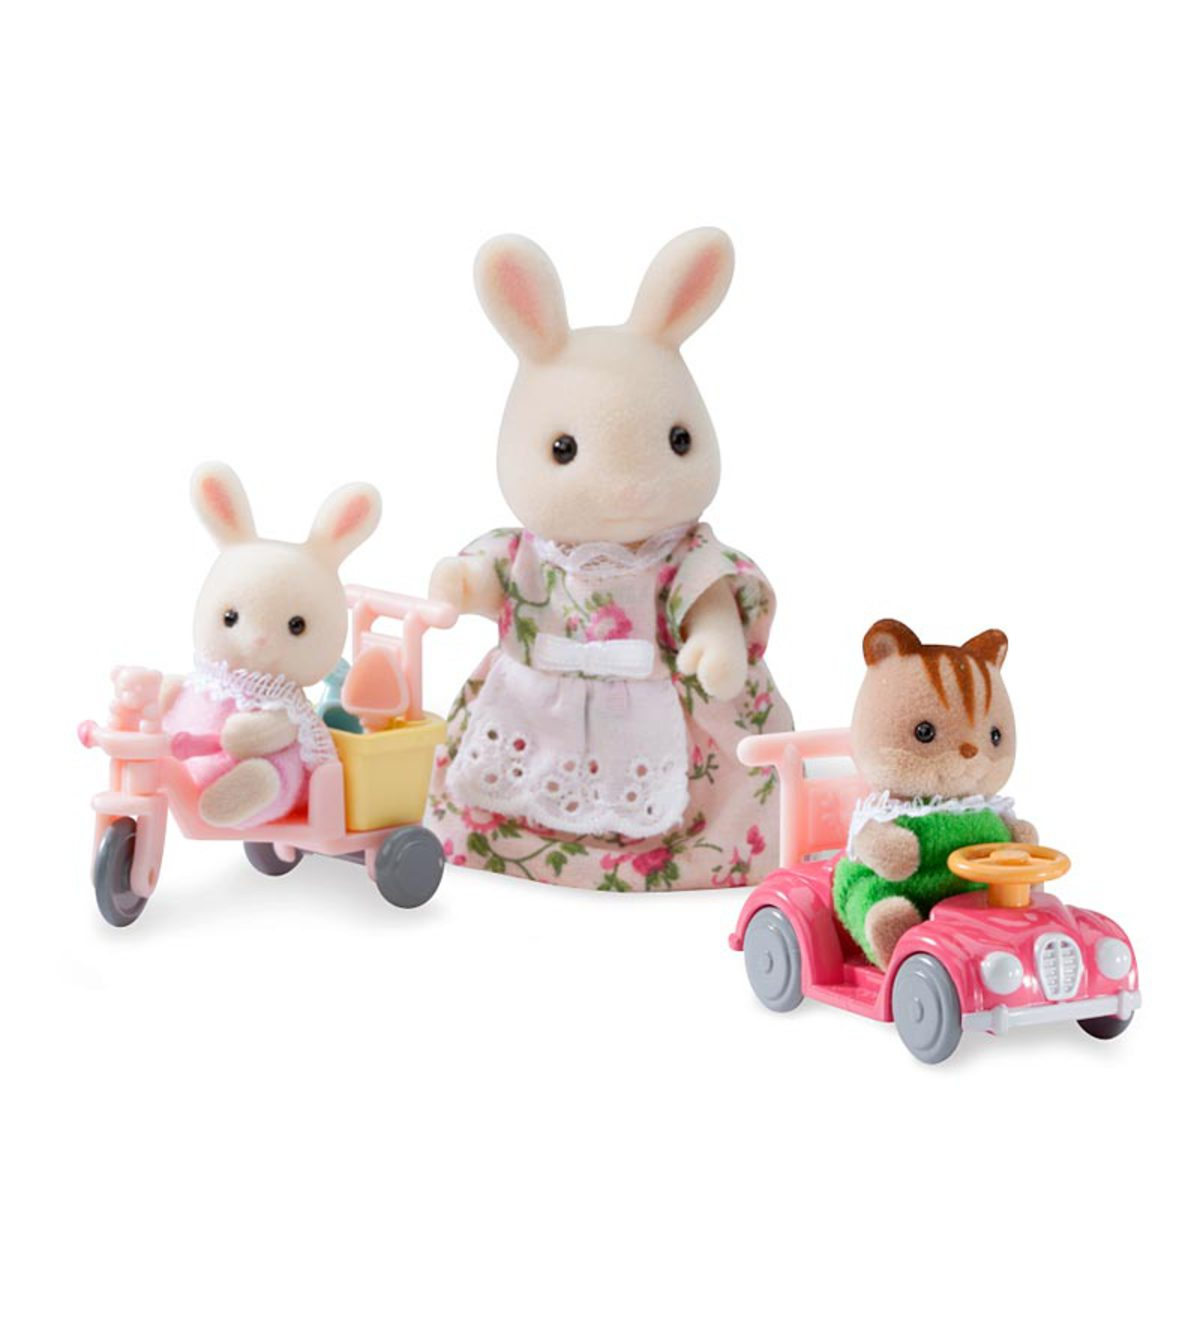 Calico Critters Apple and Jake's Ride 'n' Play